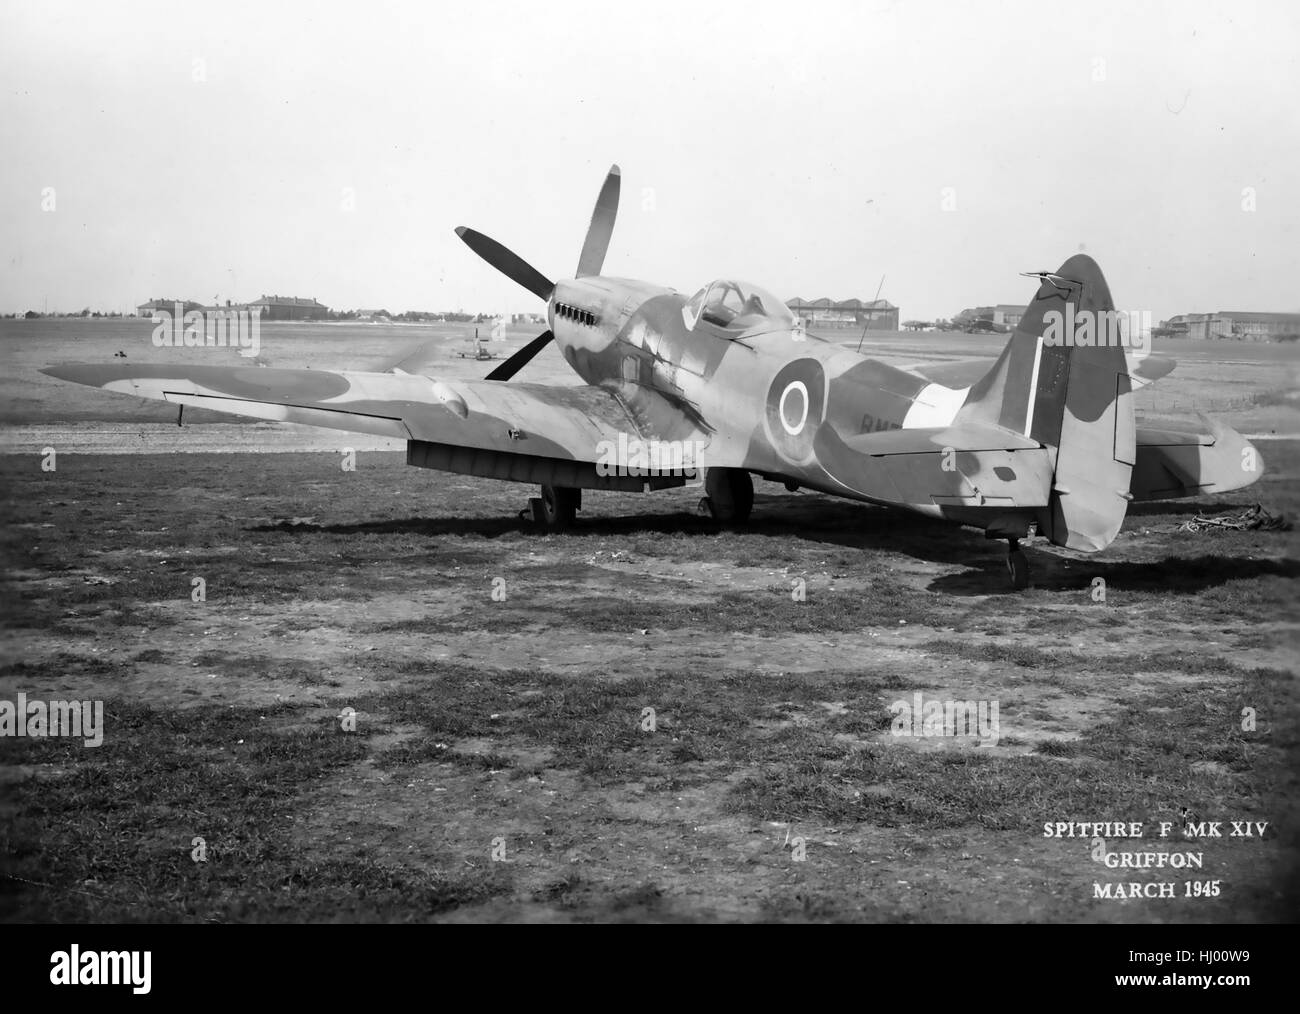 SPITFIRE F Mk XIV in March 1945. Air Ministry photo. - Stock Image